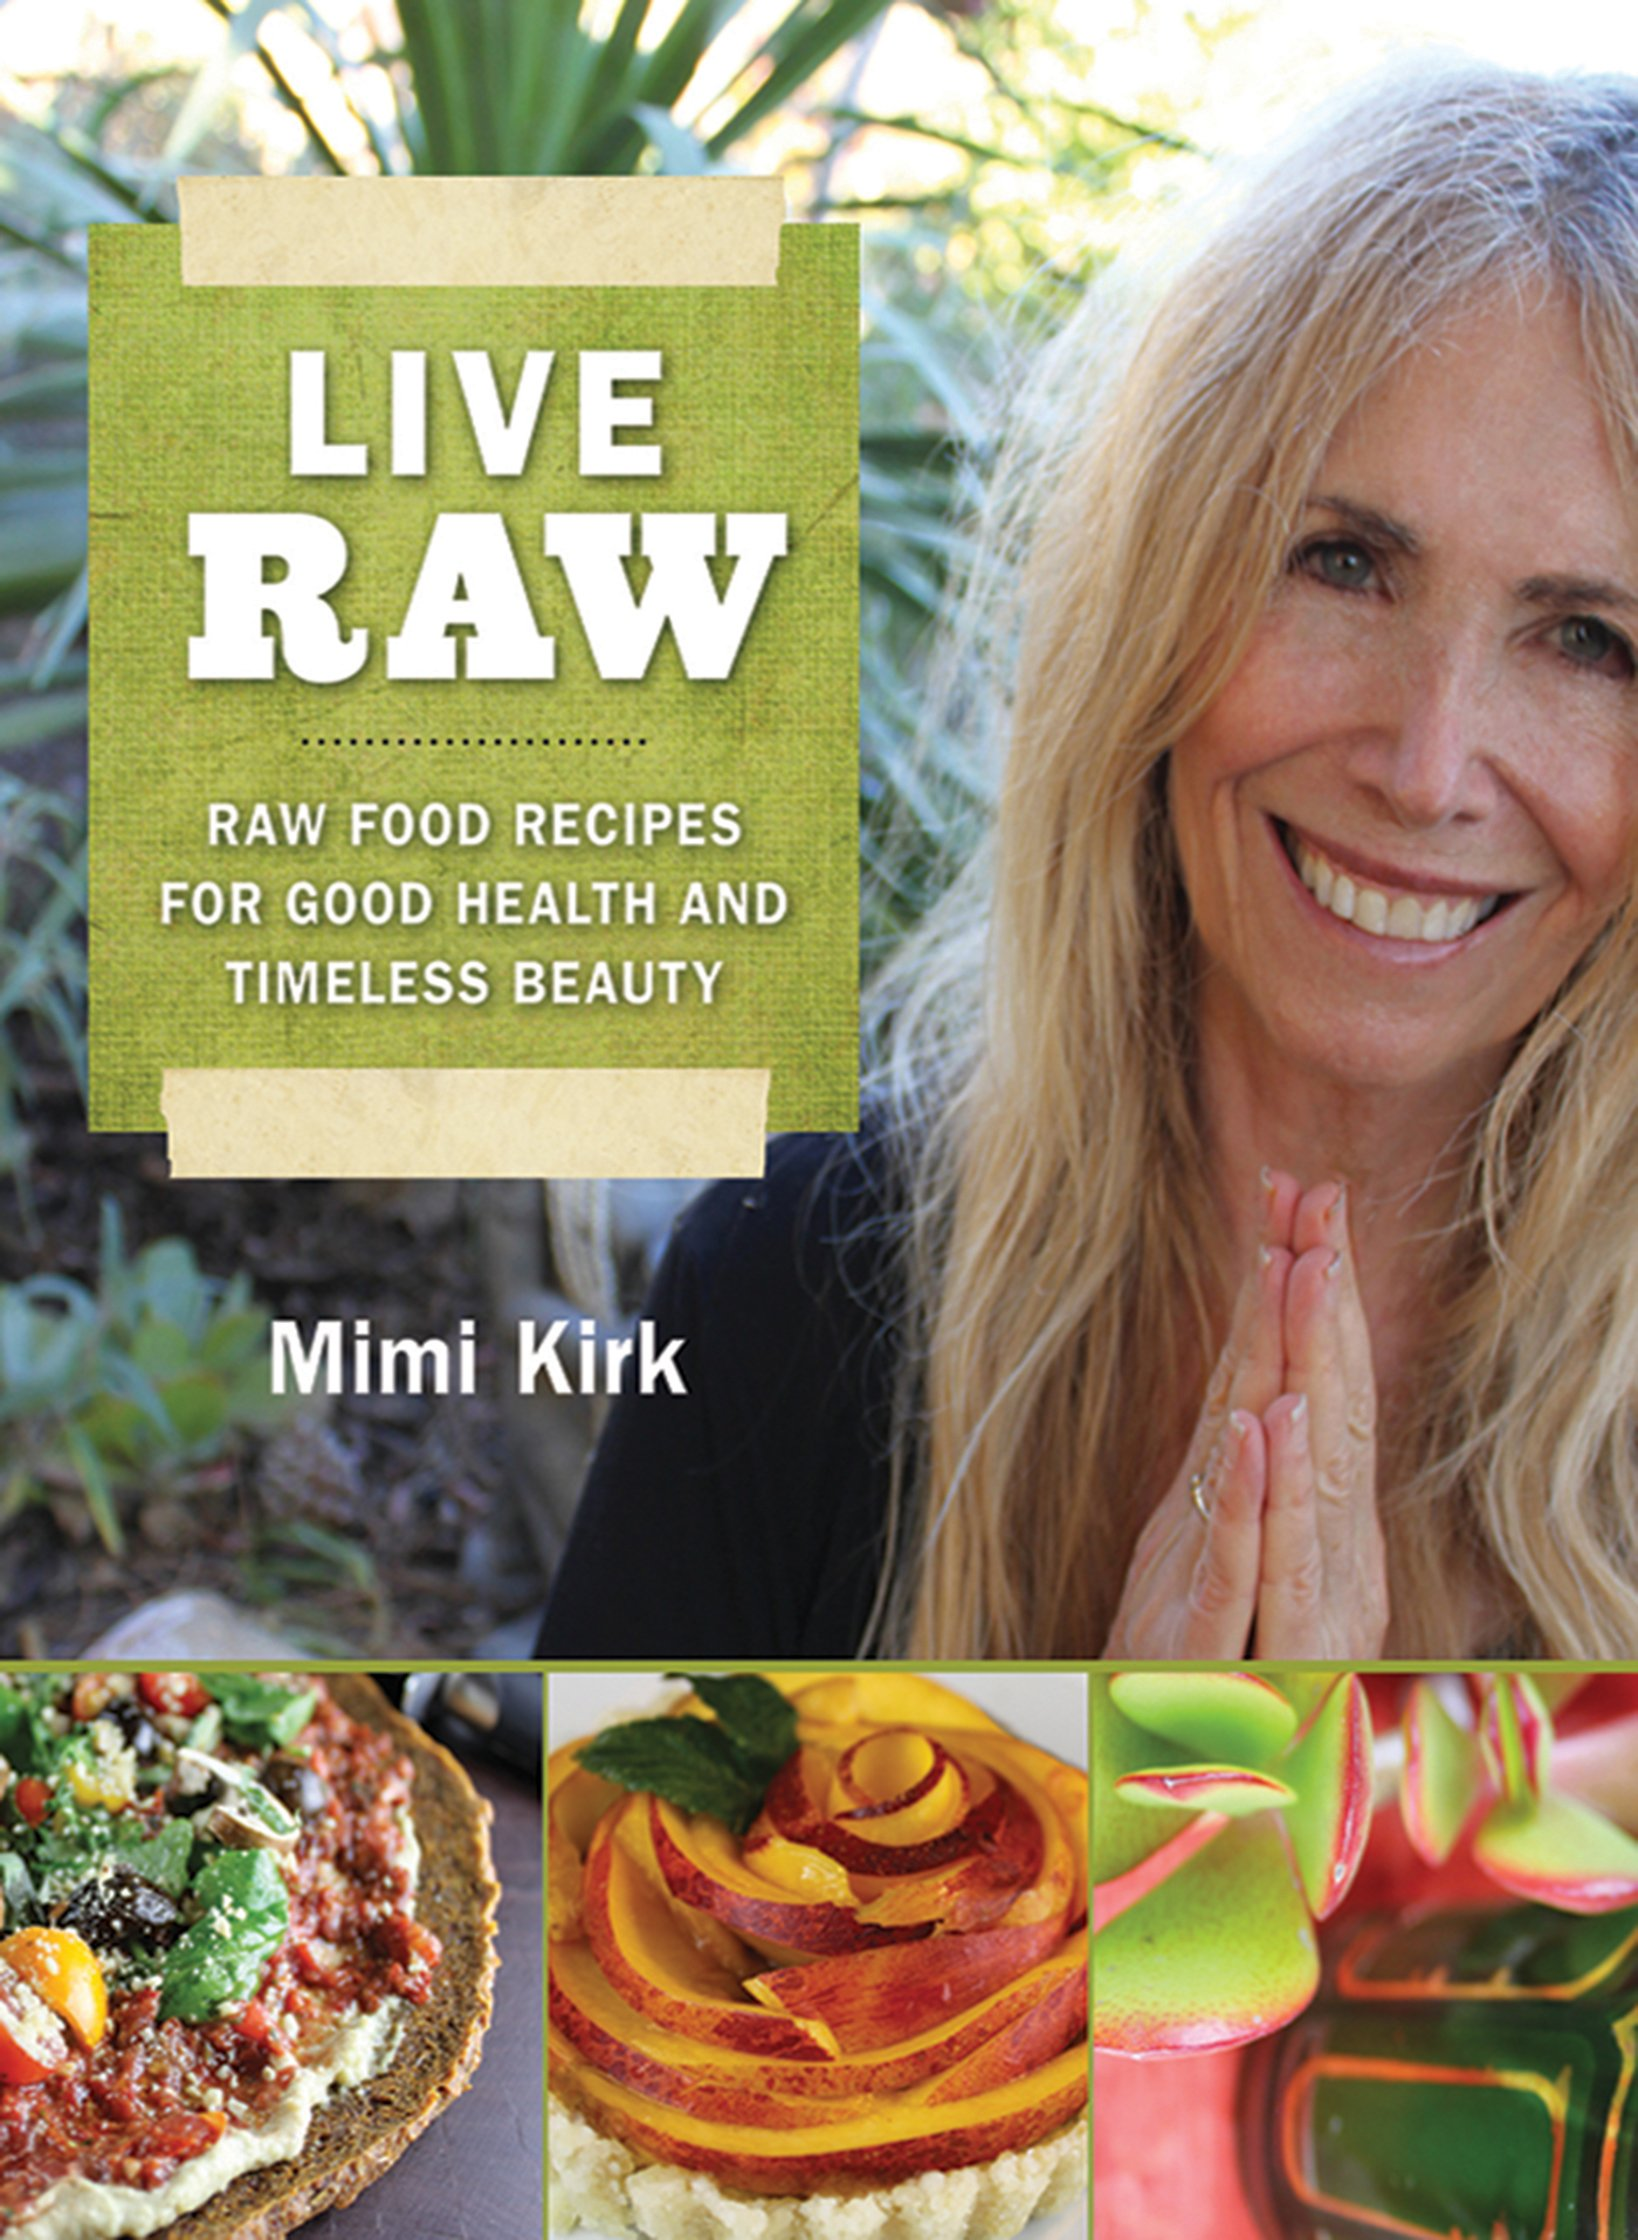 Live raw raw food recipes for good health and timeless beauty live raw raw food recipes for good health and timeless beauty mimi kirk 9781616082741 amazon books forumfinder Choice Image